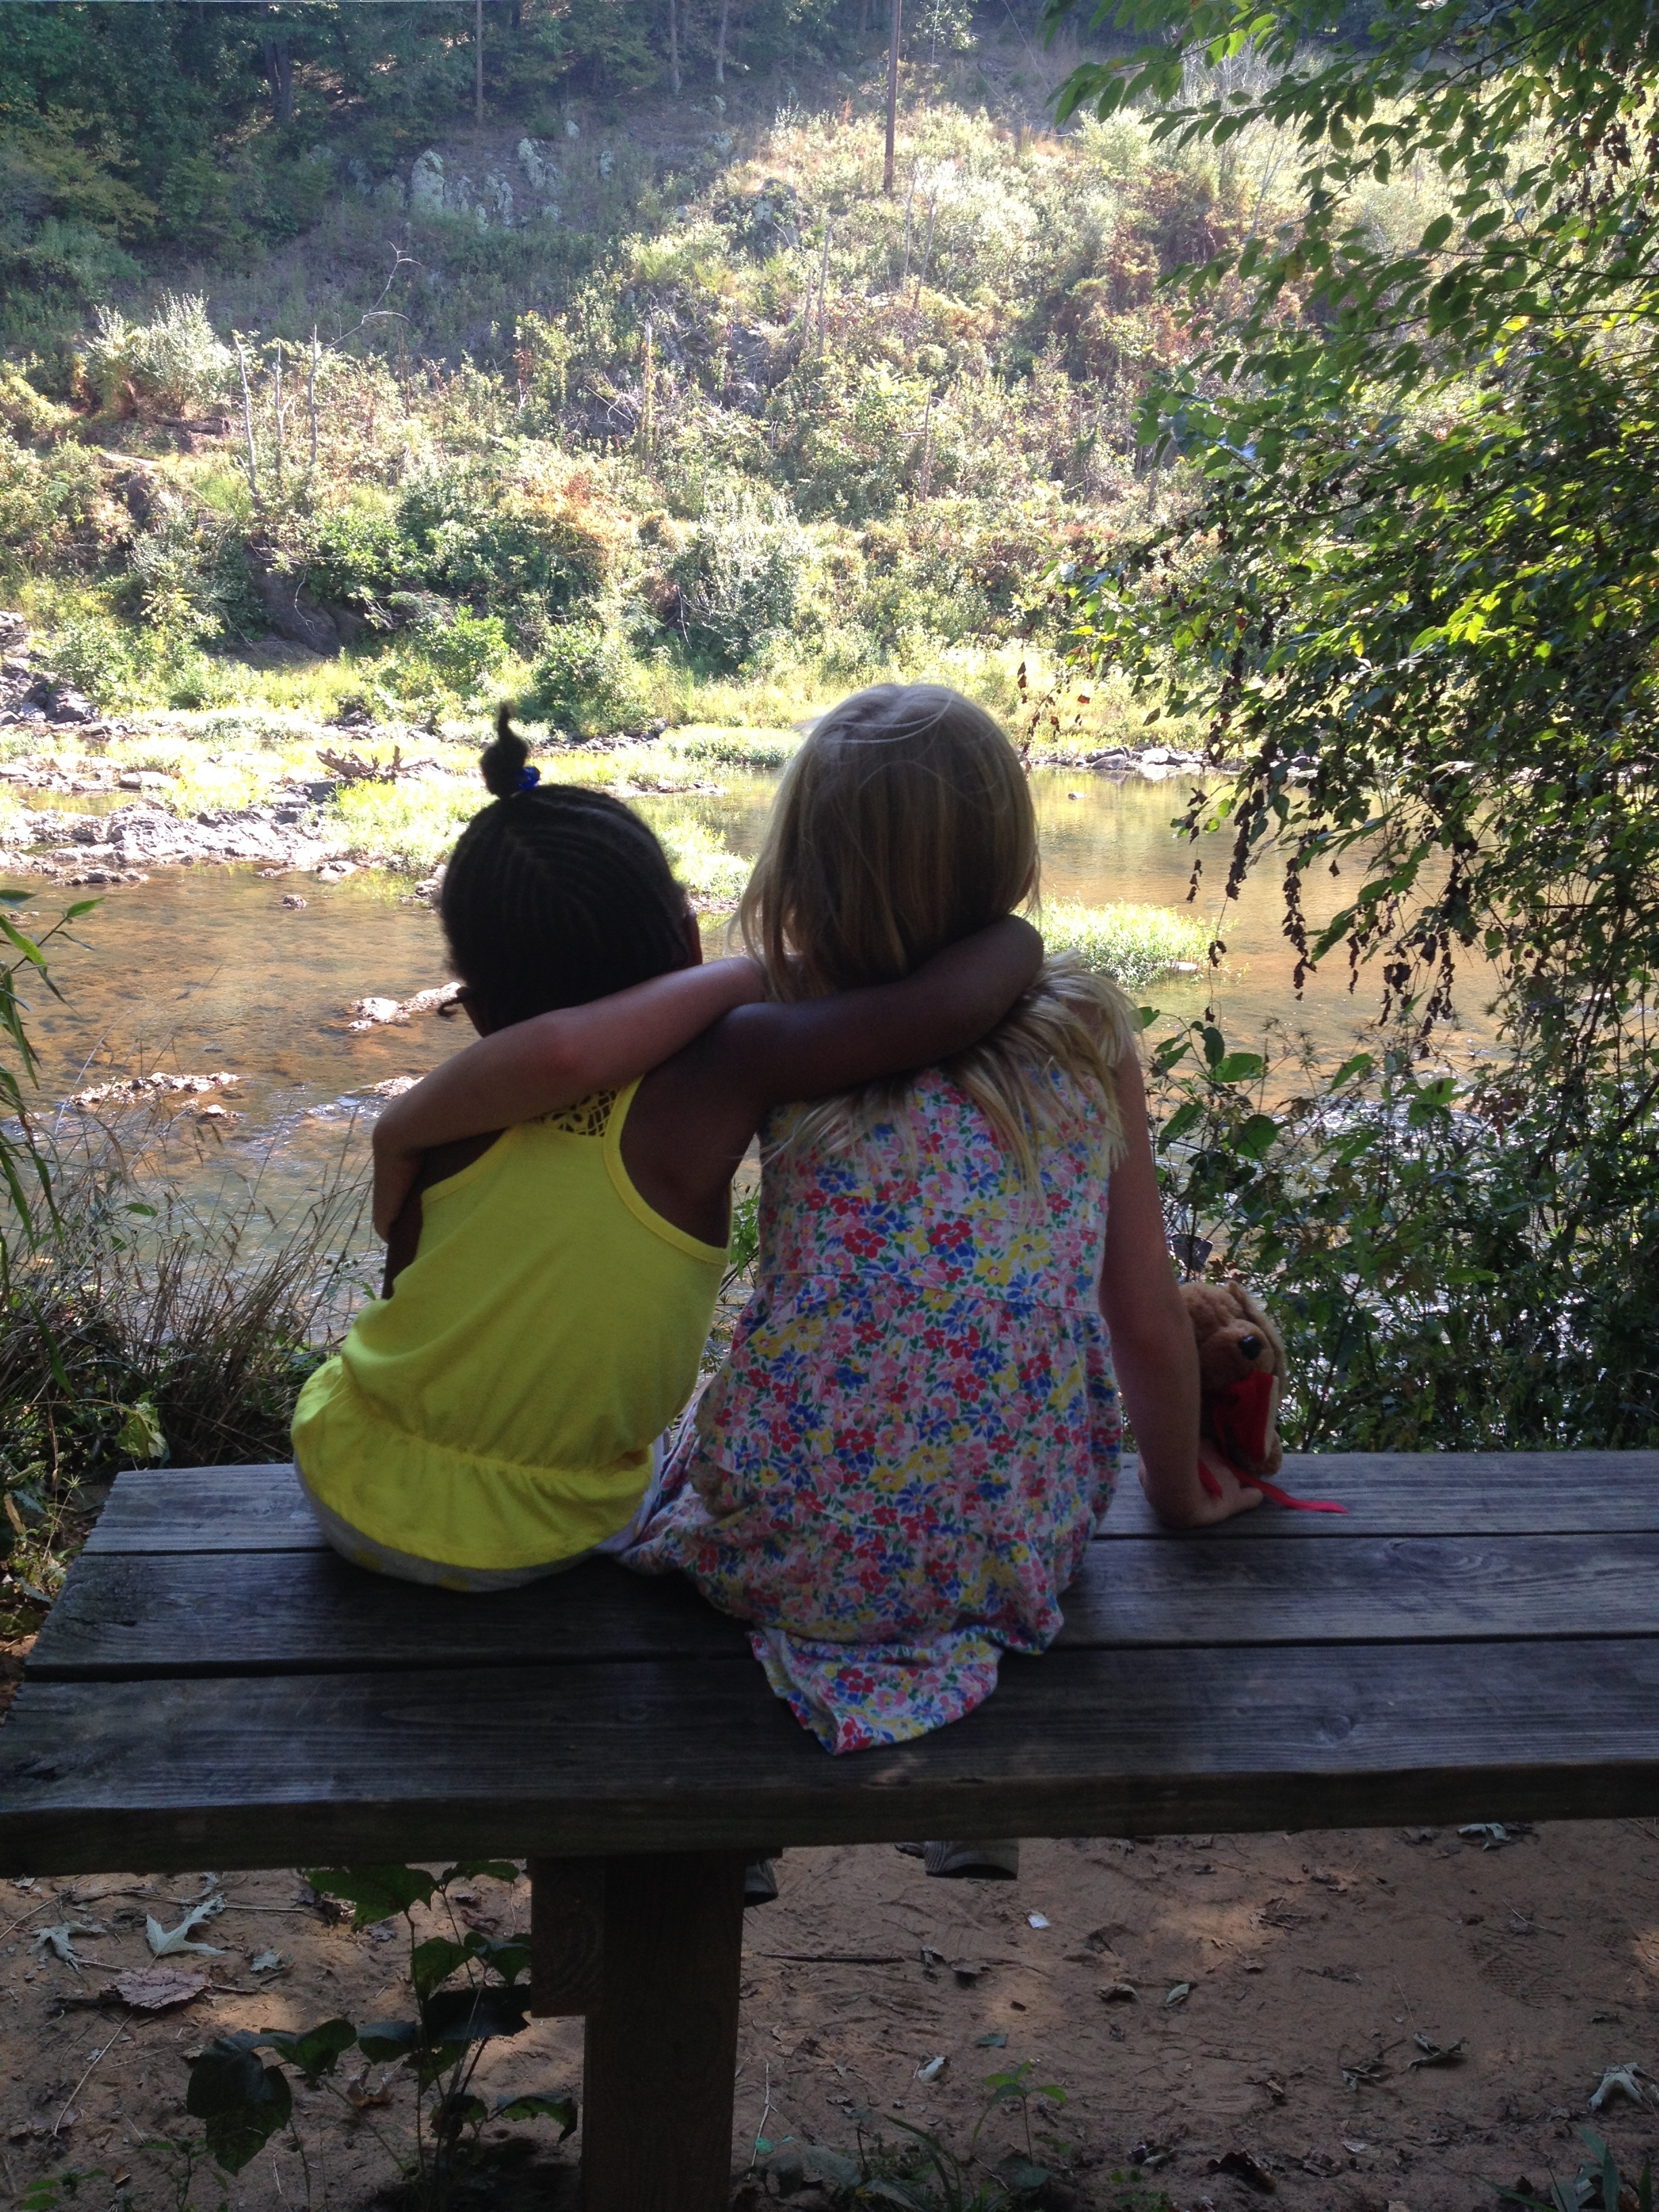 Backs of two girls side by side watching river